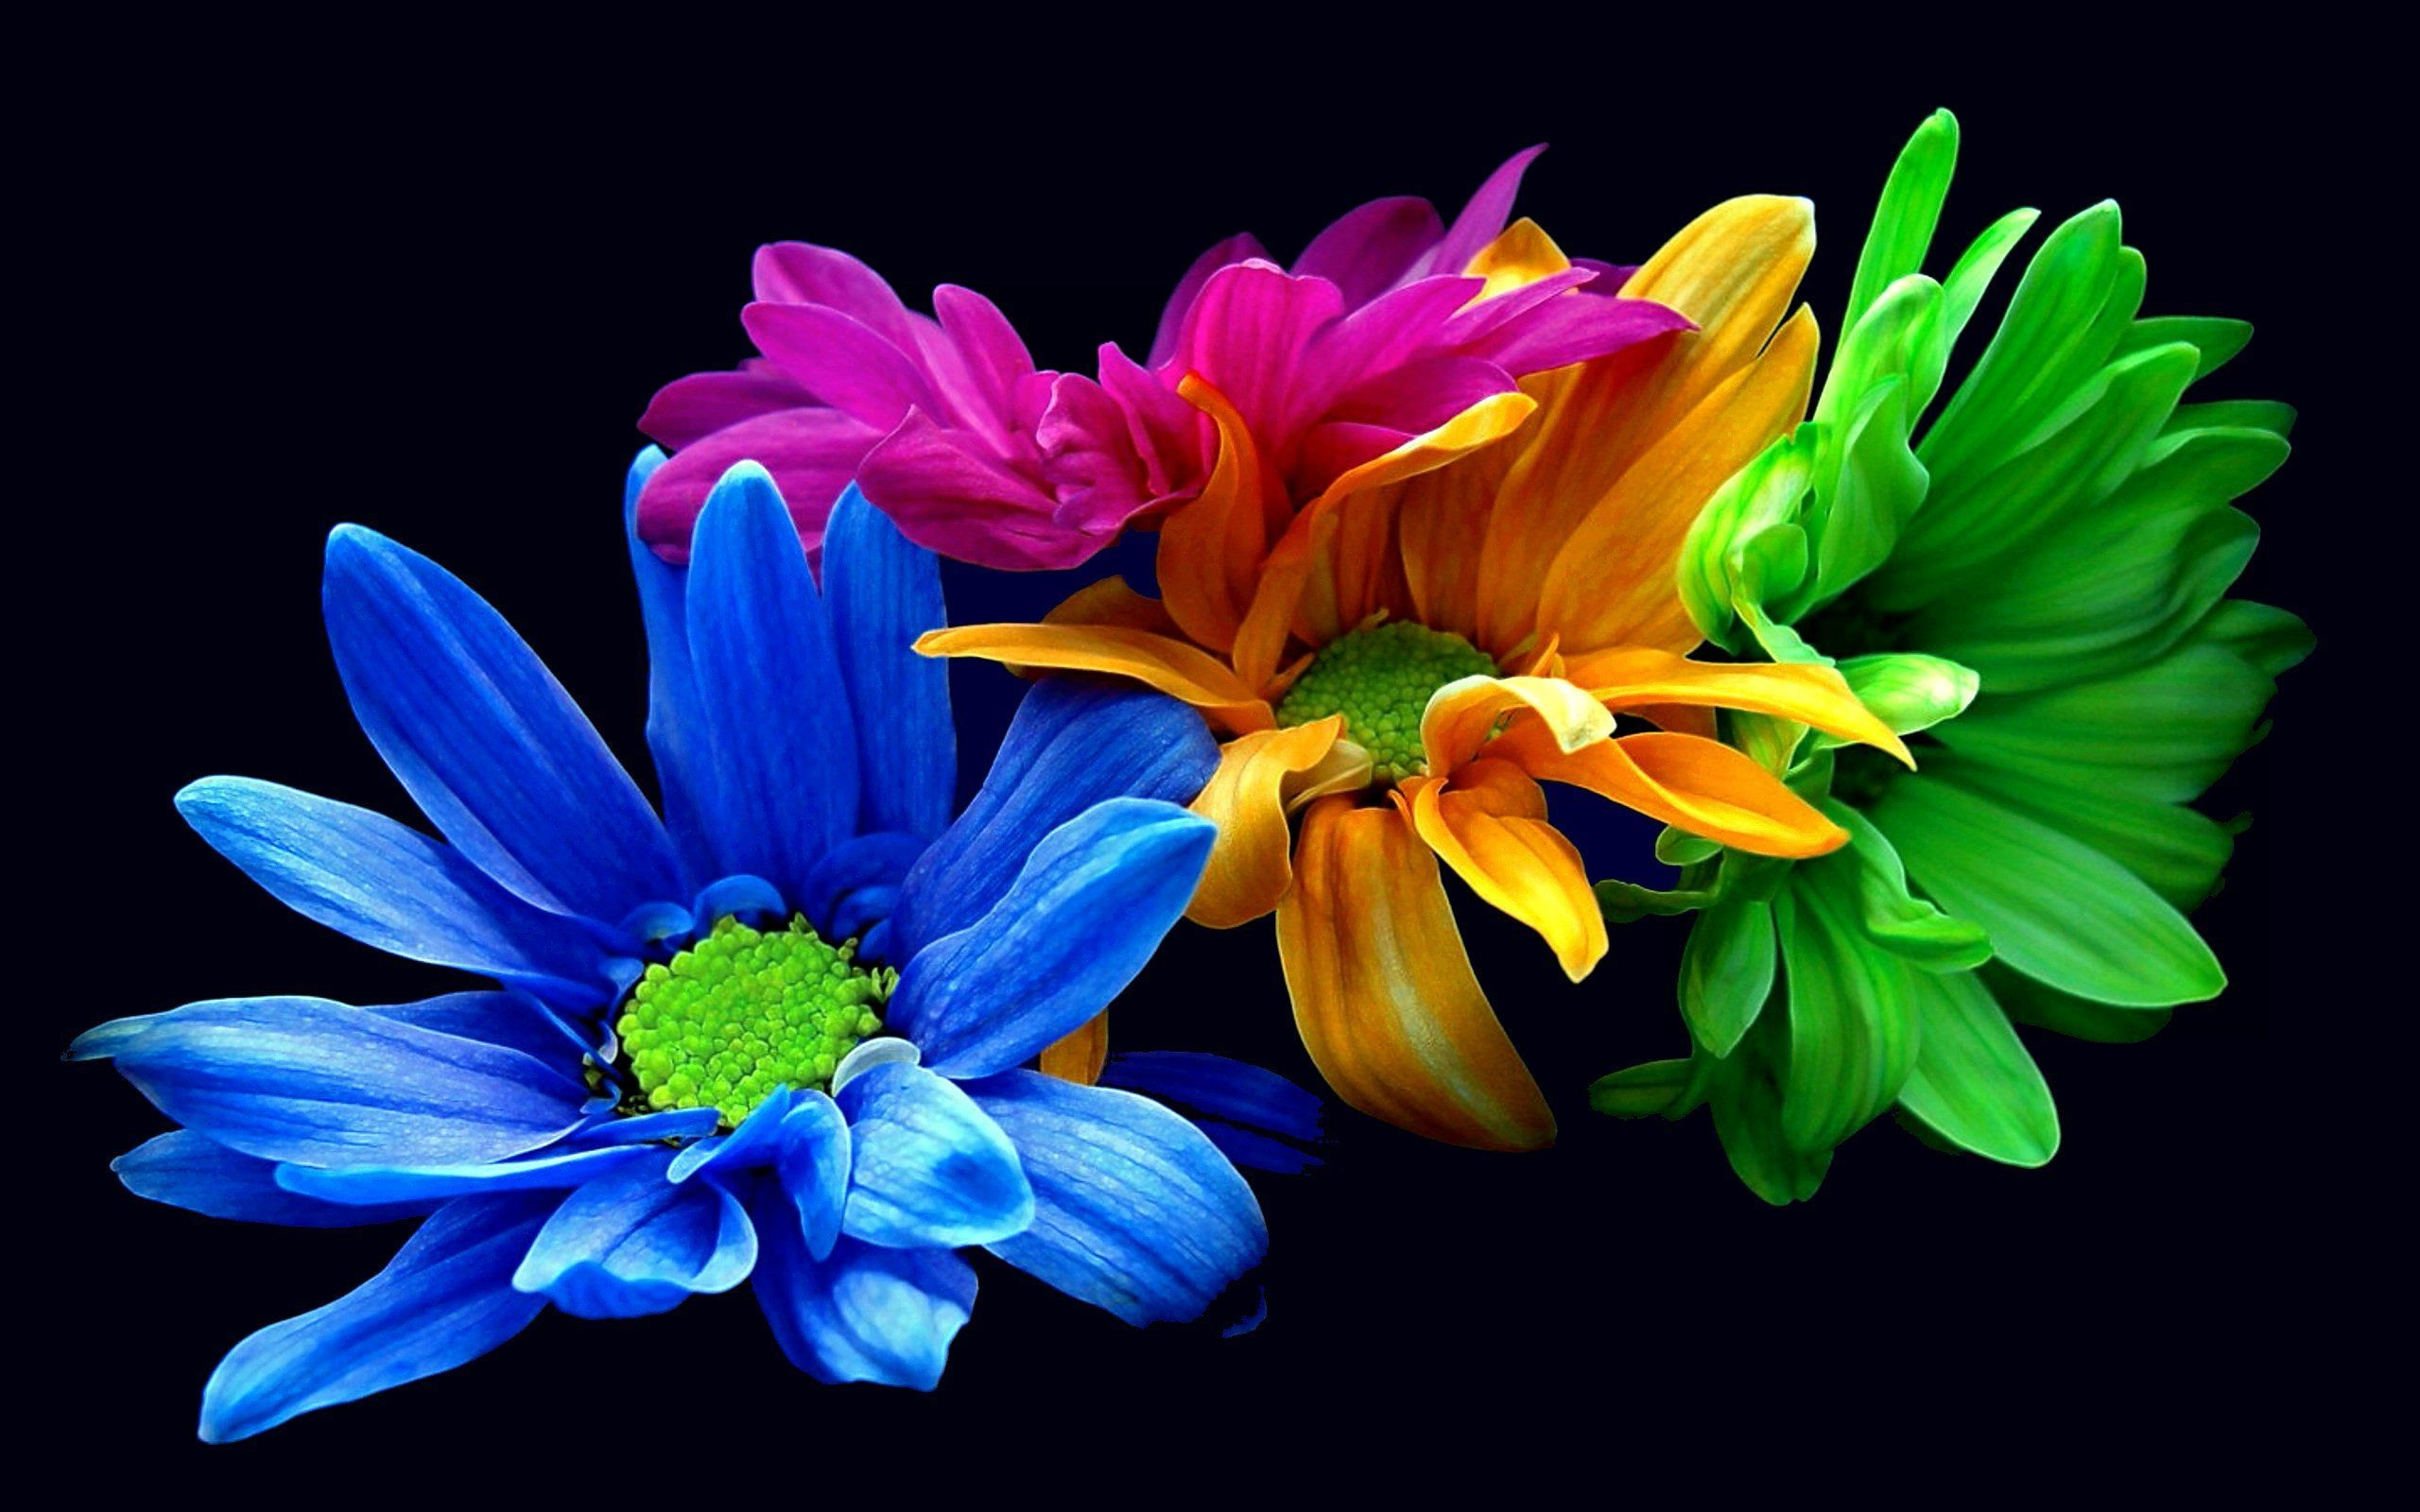 2560x1600 Colorful Flowers Dark Background Wallpapers | HD Wallpapers ...